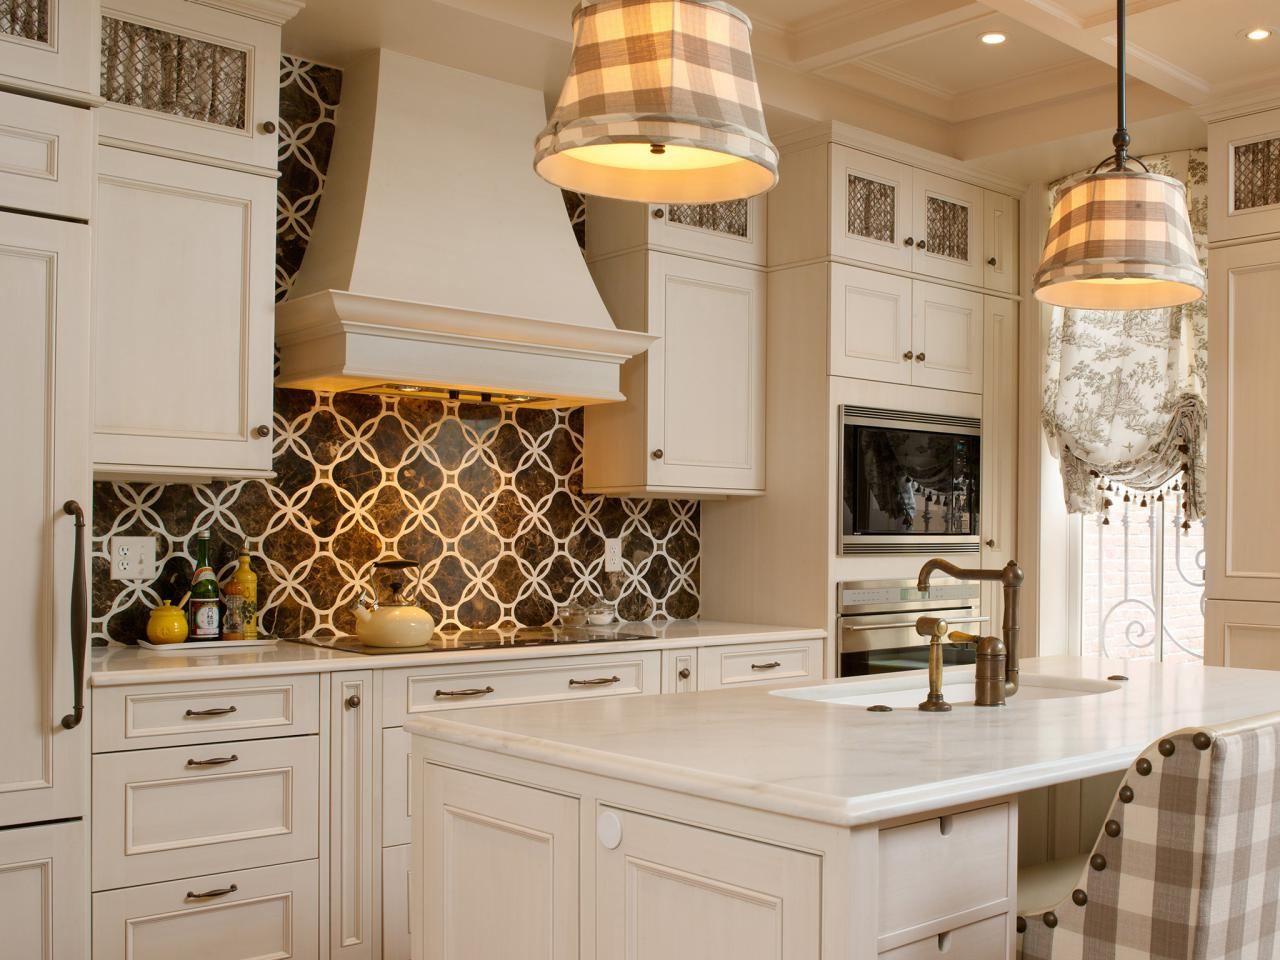 kitchen backsplash ideas kitchen backsplash design ideas MHRLCWK